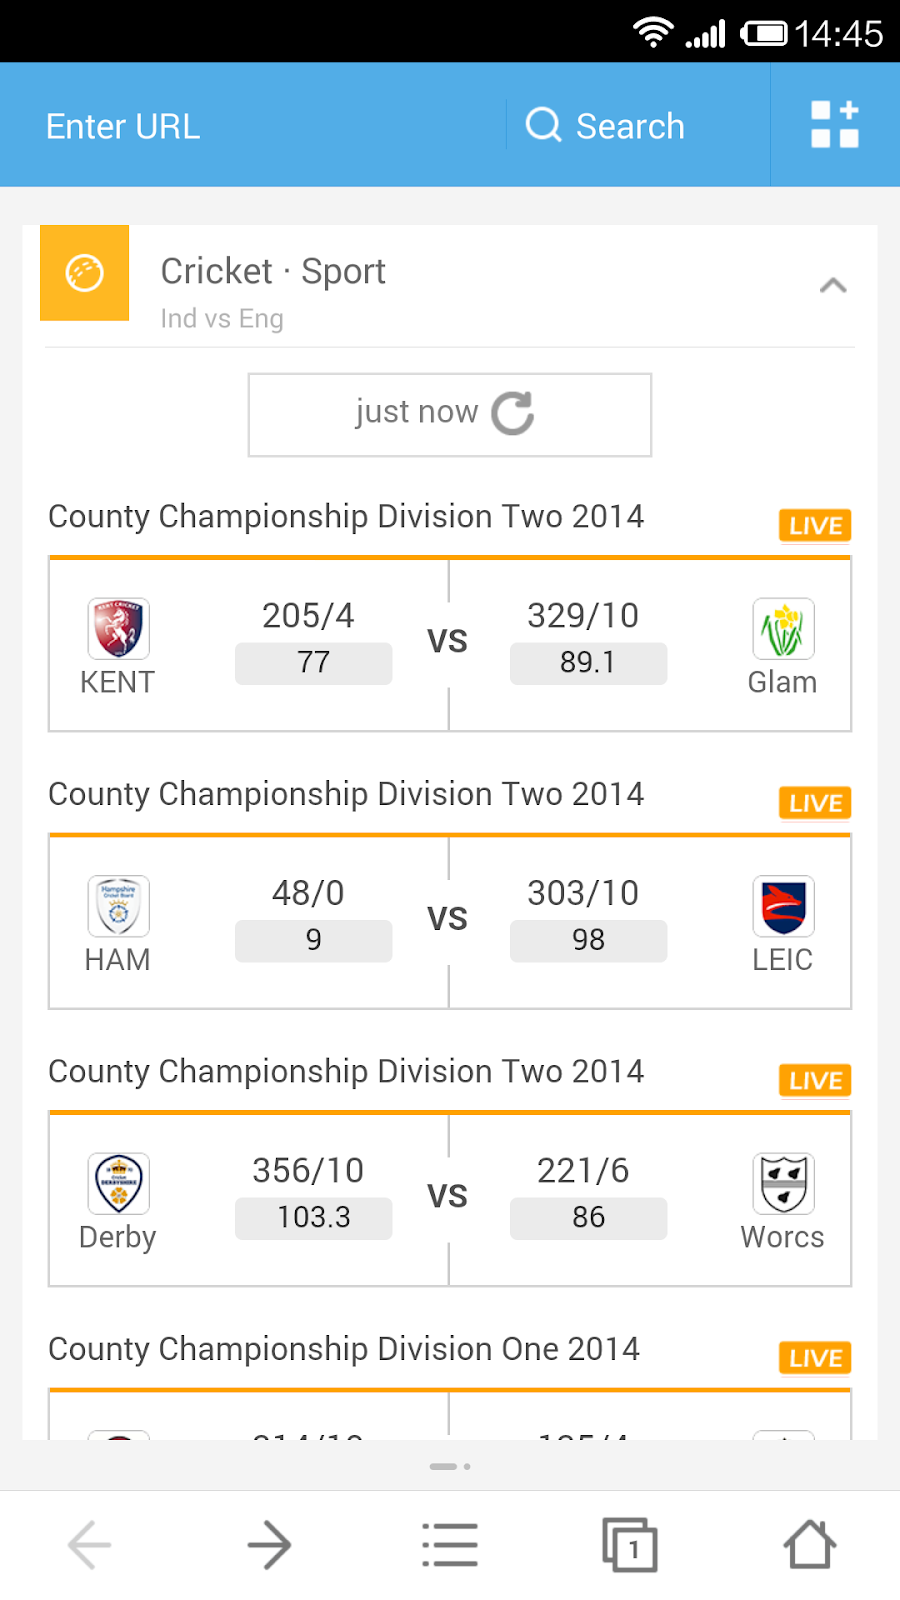 Never miss a game with UC Browser - UC Cricket updated with a match